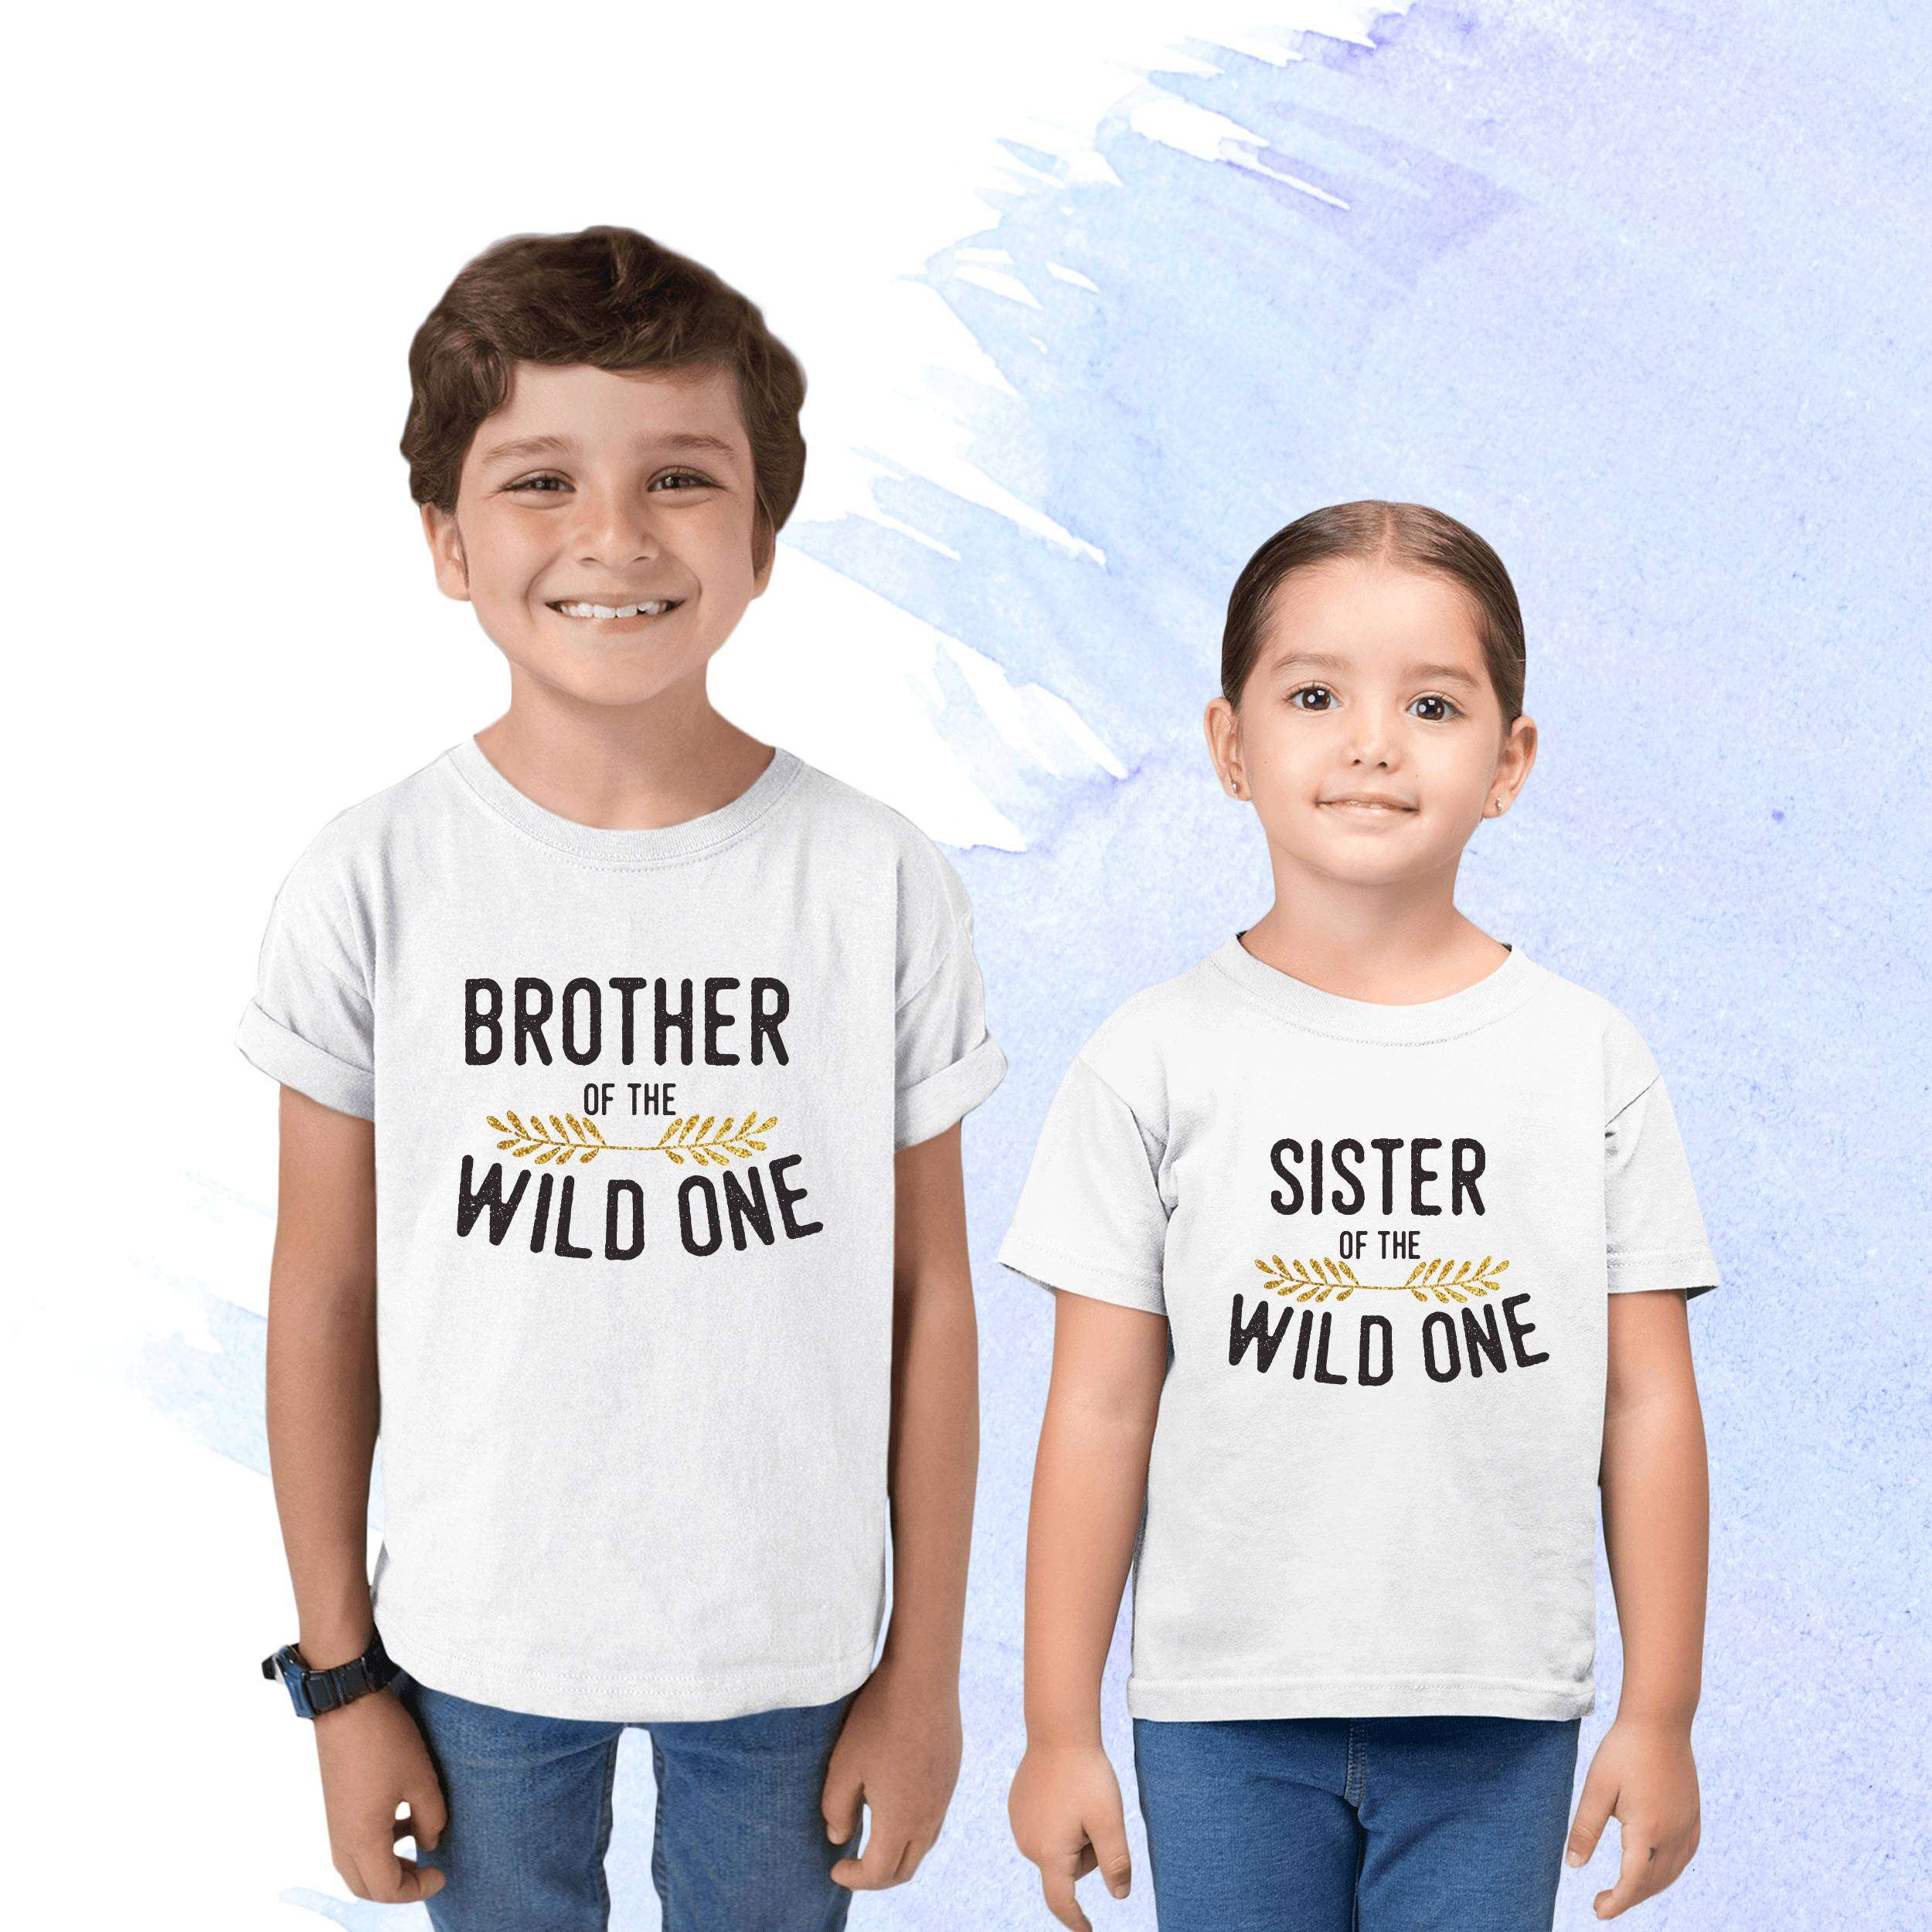 dadac768 Brother, Sister, Wild One Family, Family Shirts - Fabconic